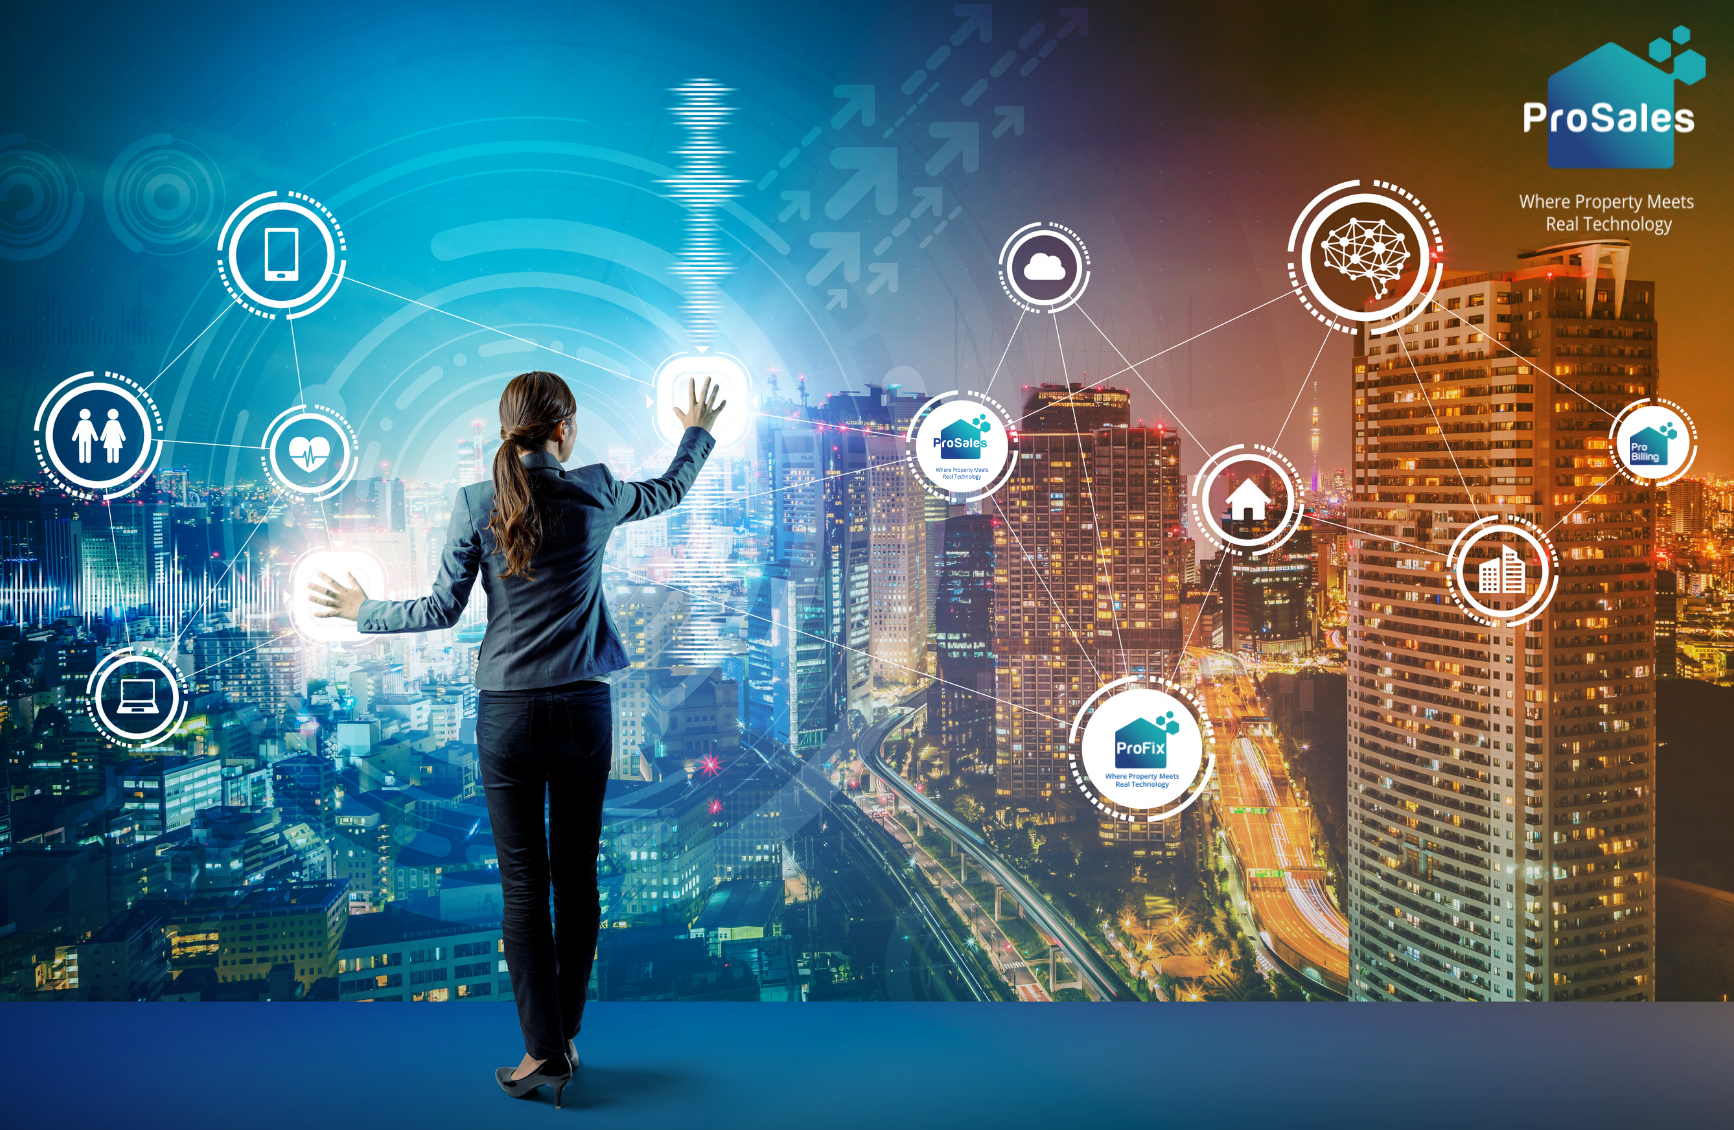 Property Digital Solutions are the future of the built environment